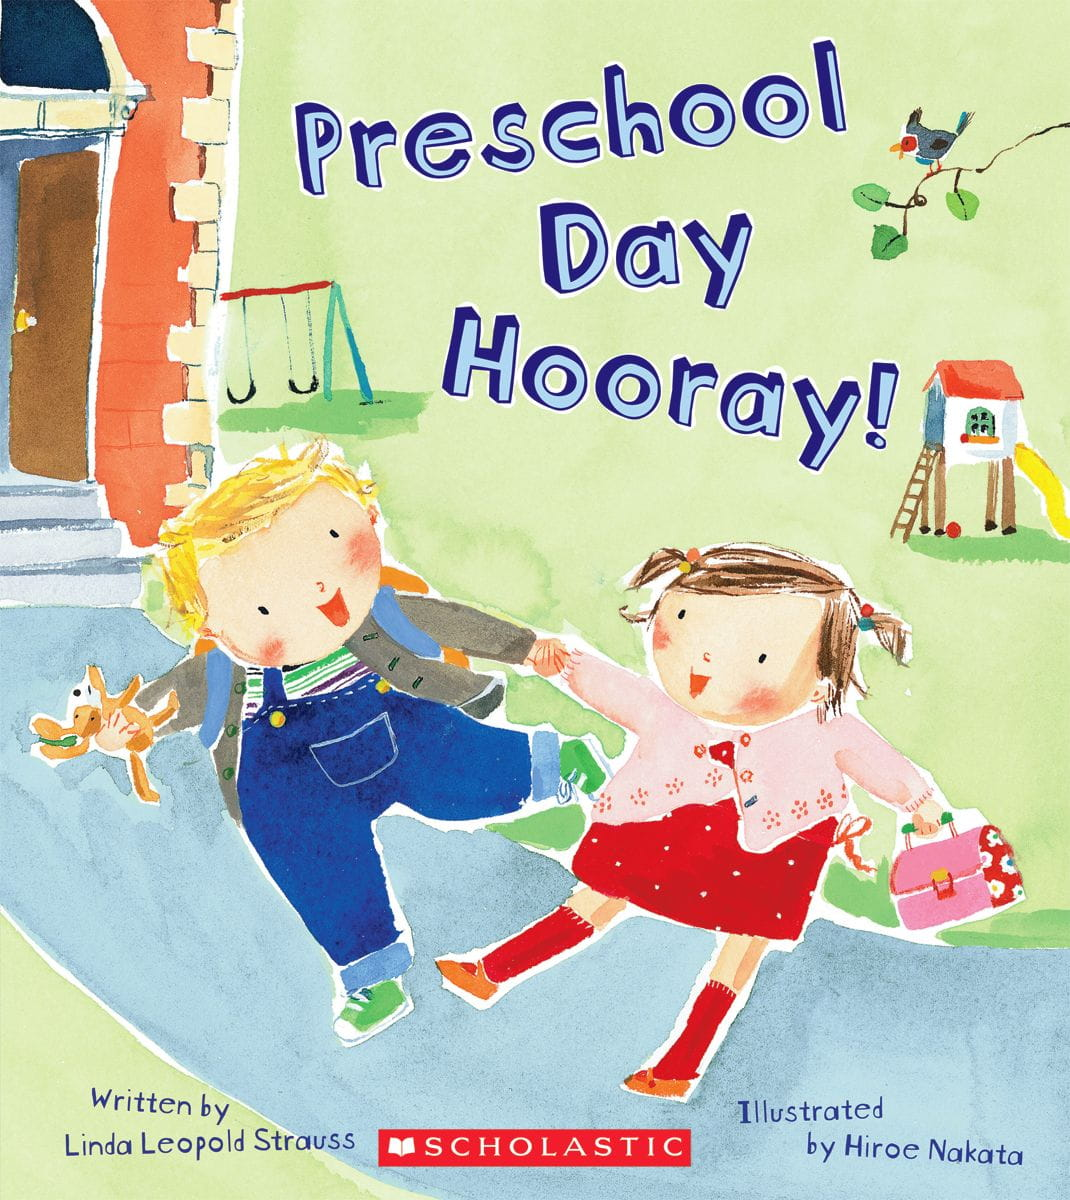 Preschool Day Hooray cover